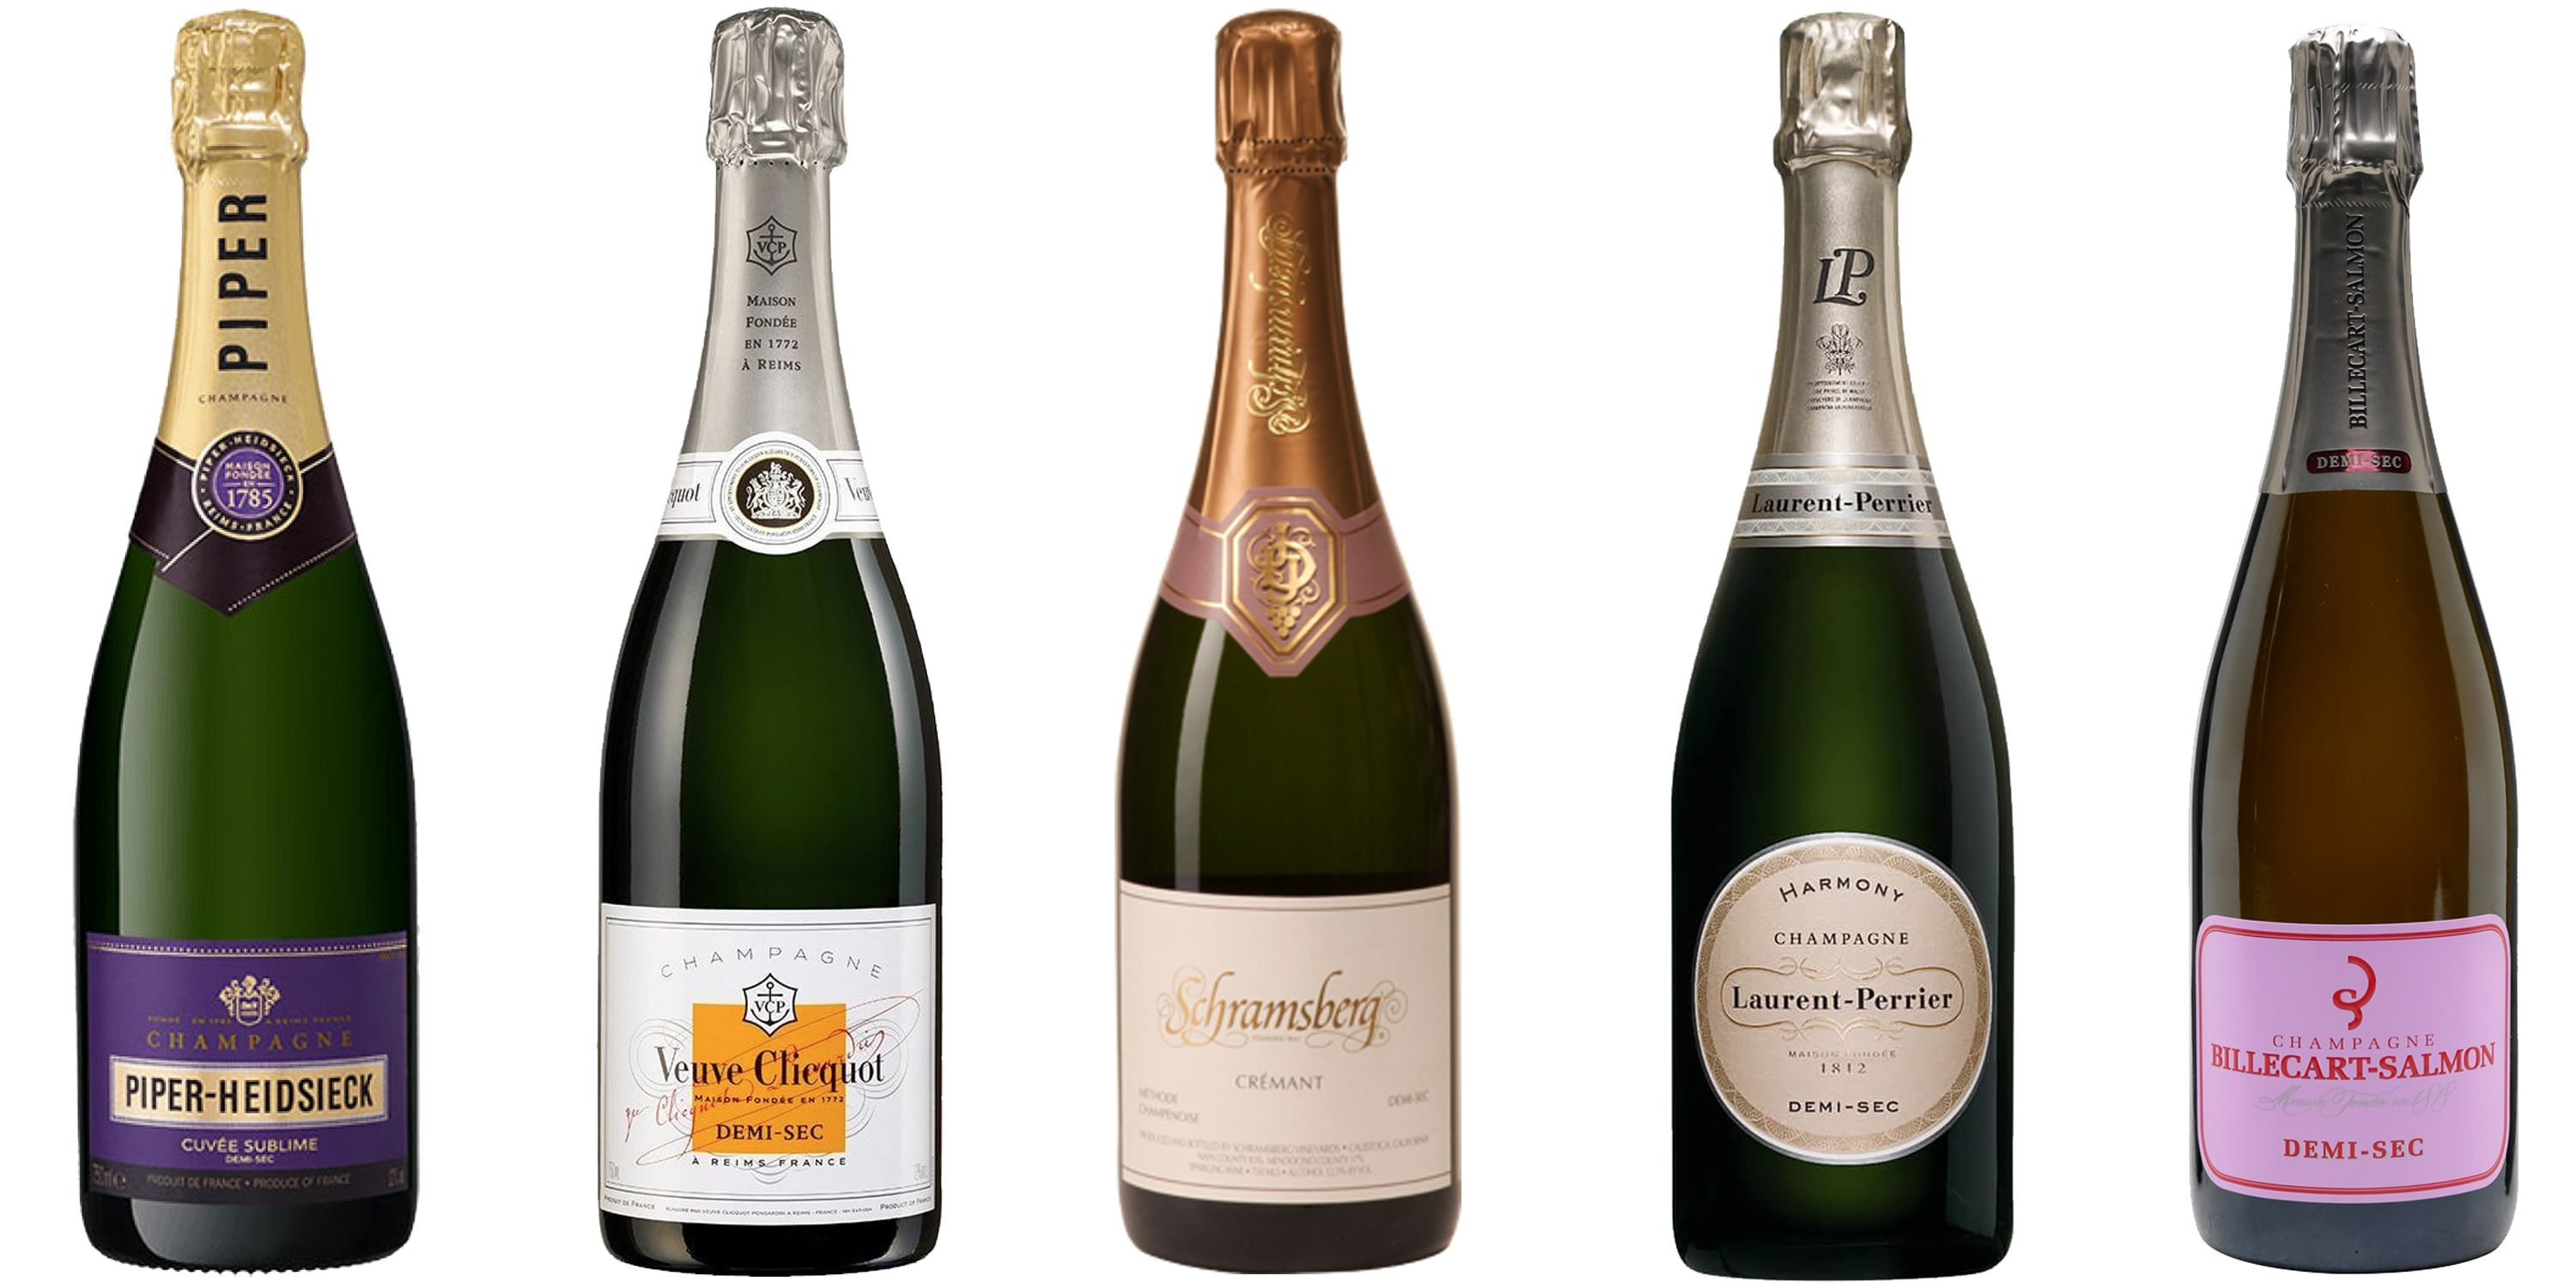 The Best Sweet Champagne 12 Good Demi Sec Sparkling Wine Brands